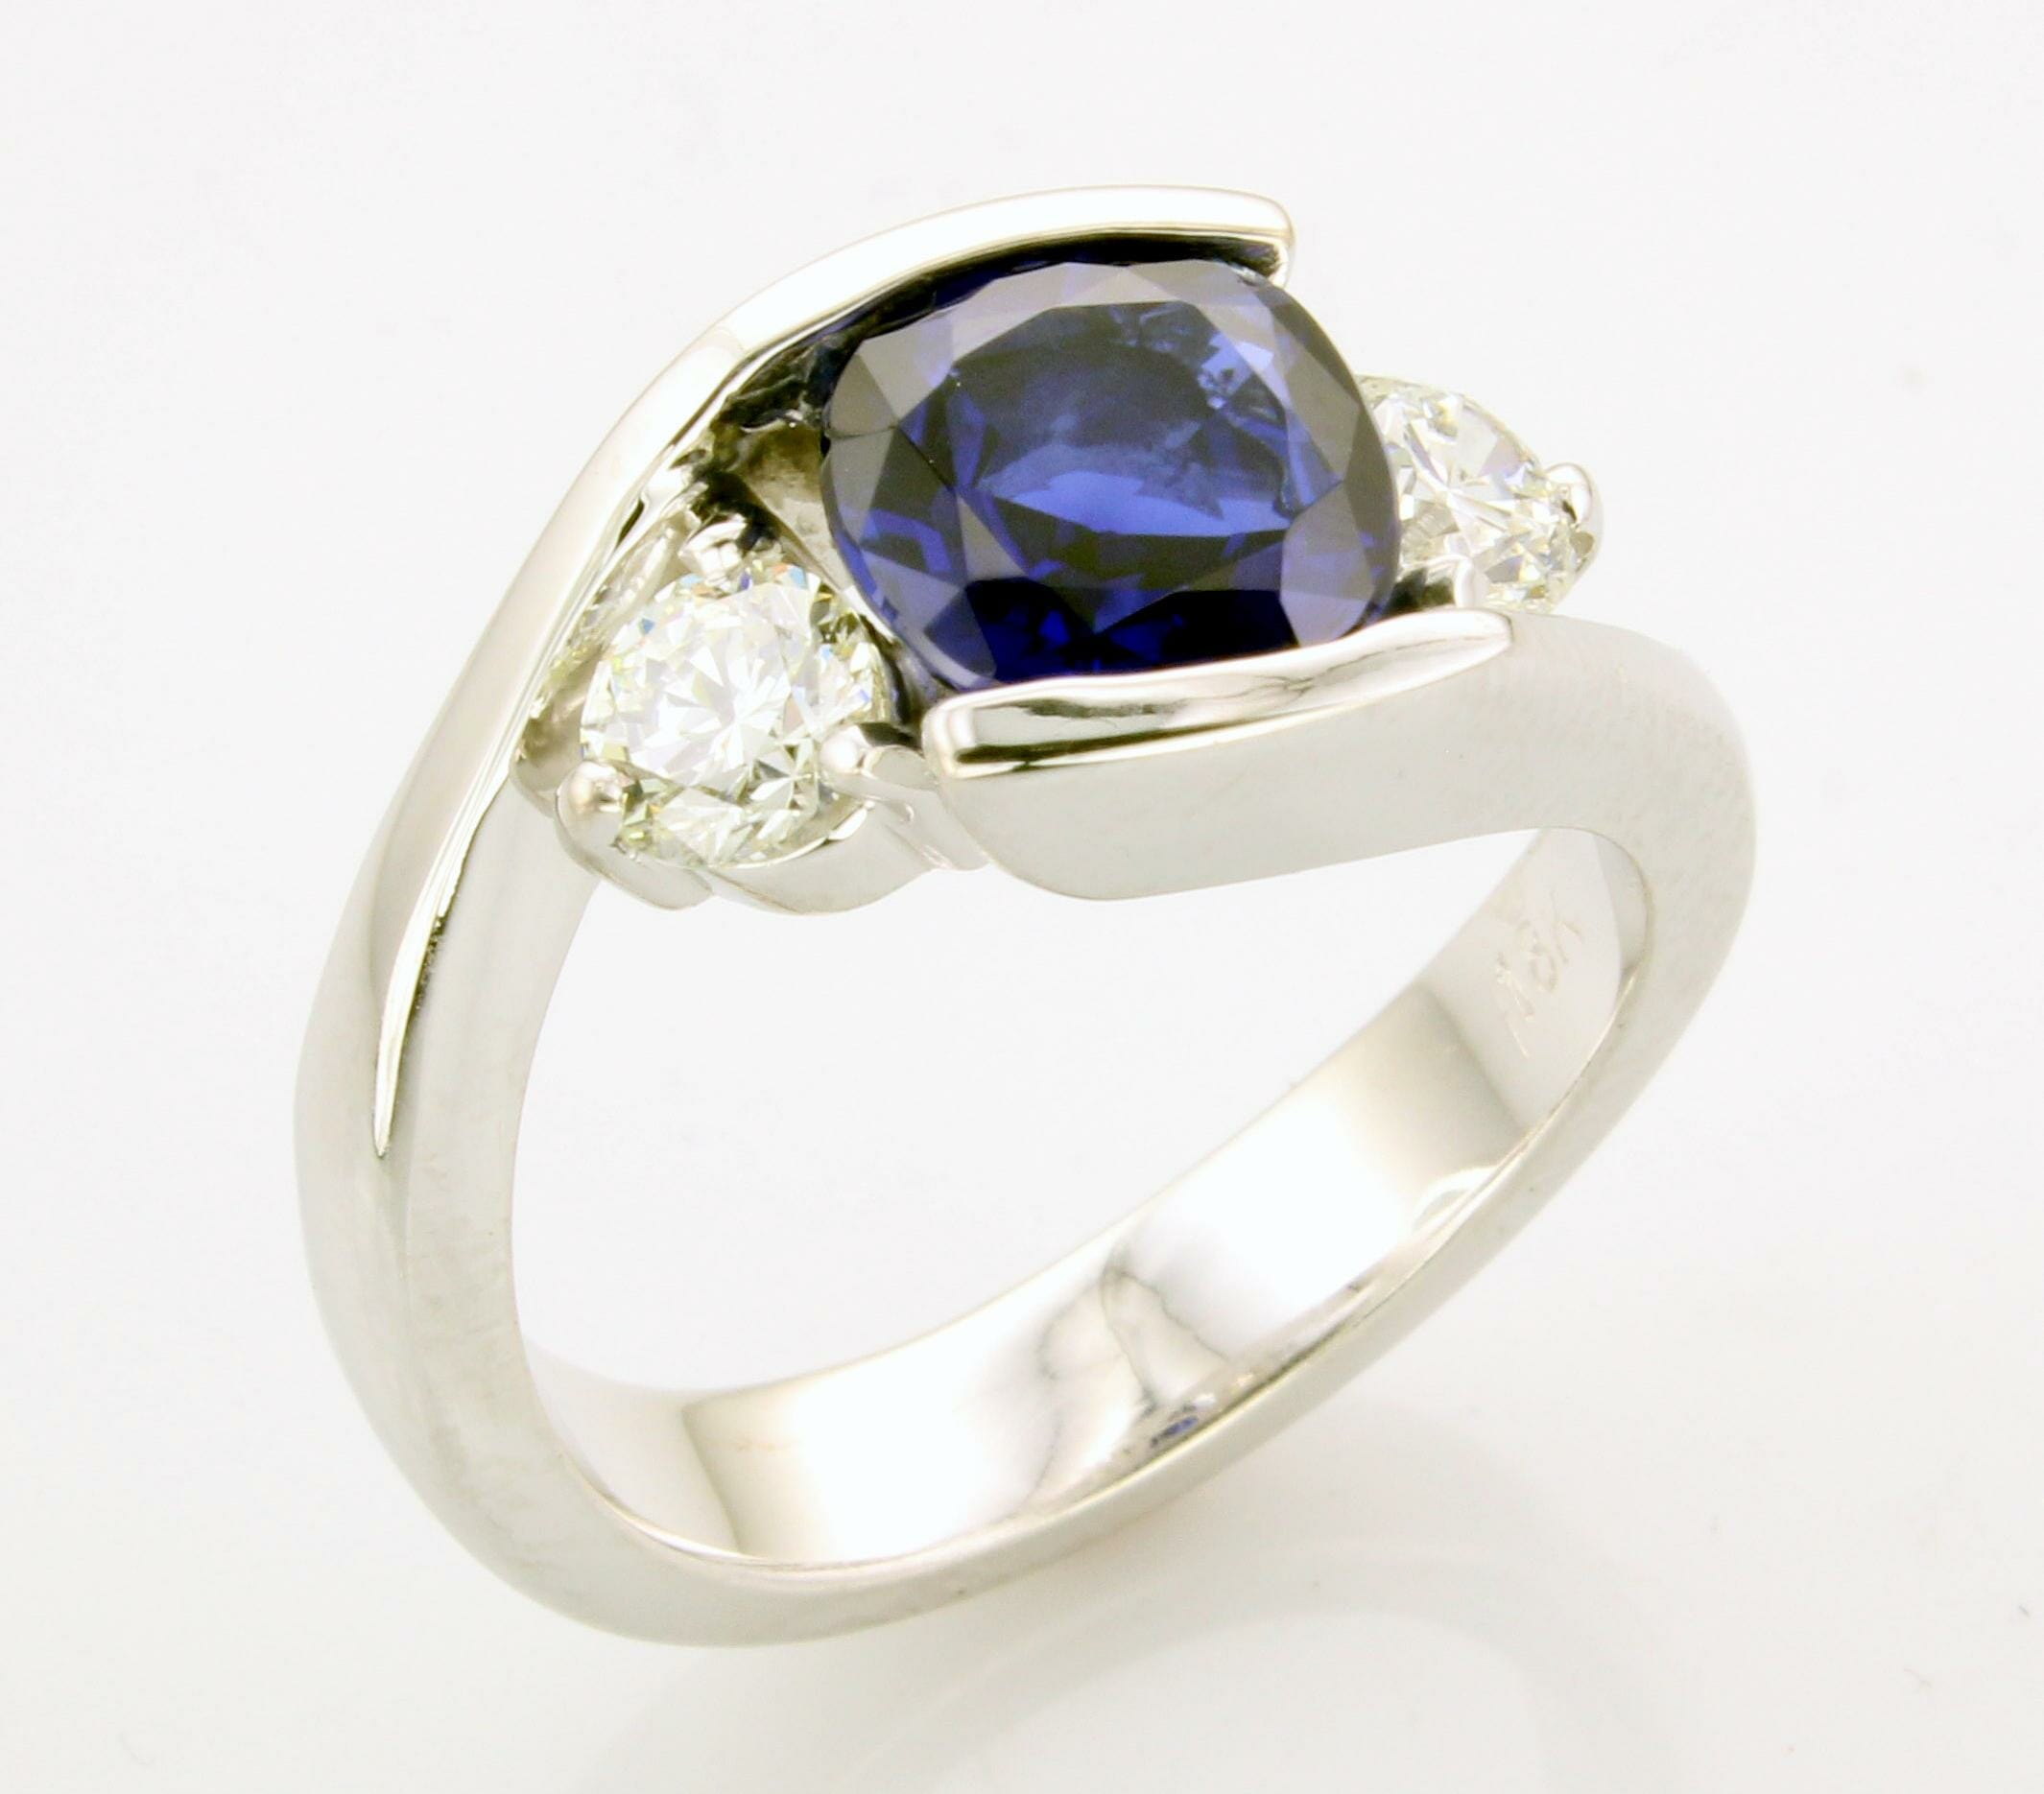 Sapphire diamond engagement ring with side diamonds